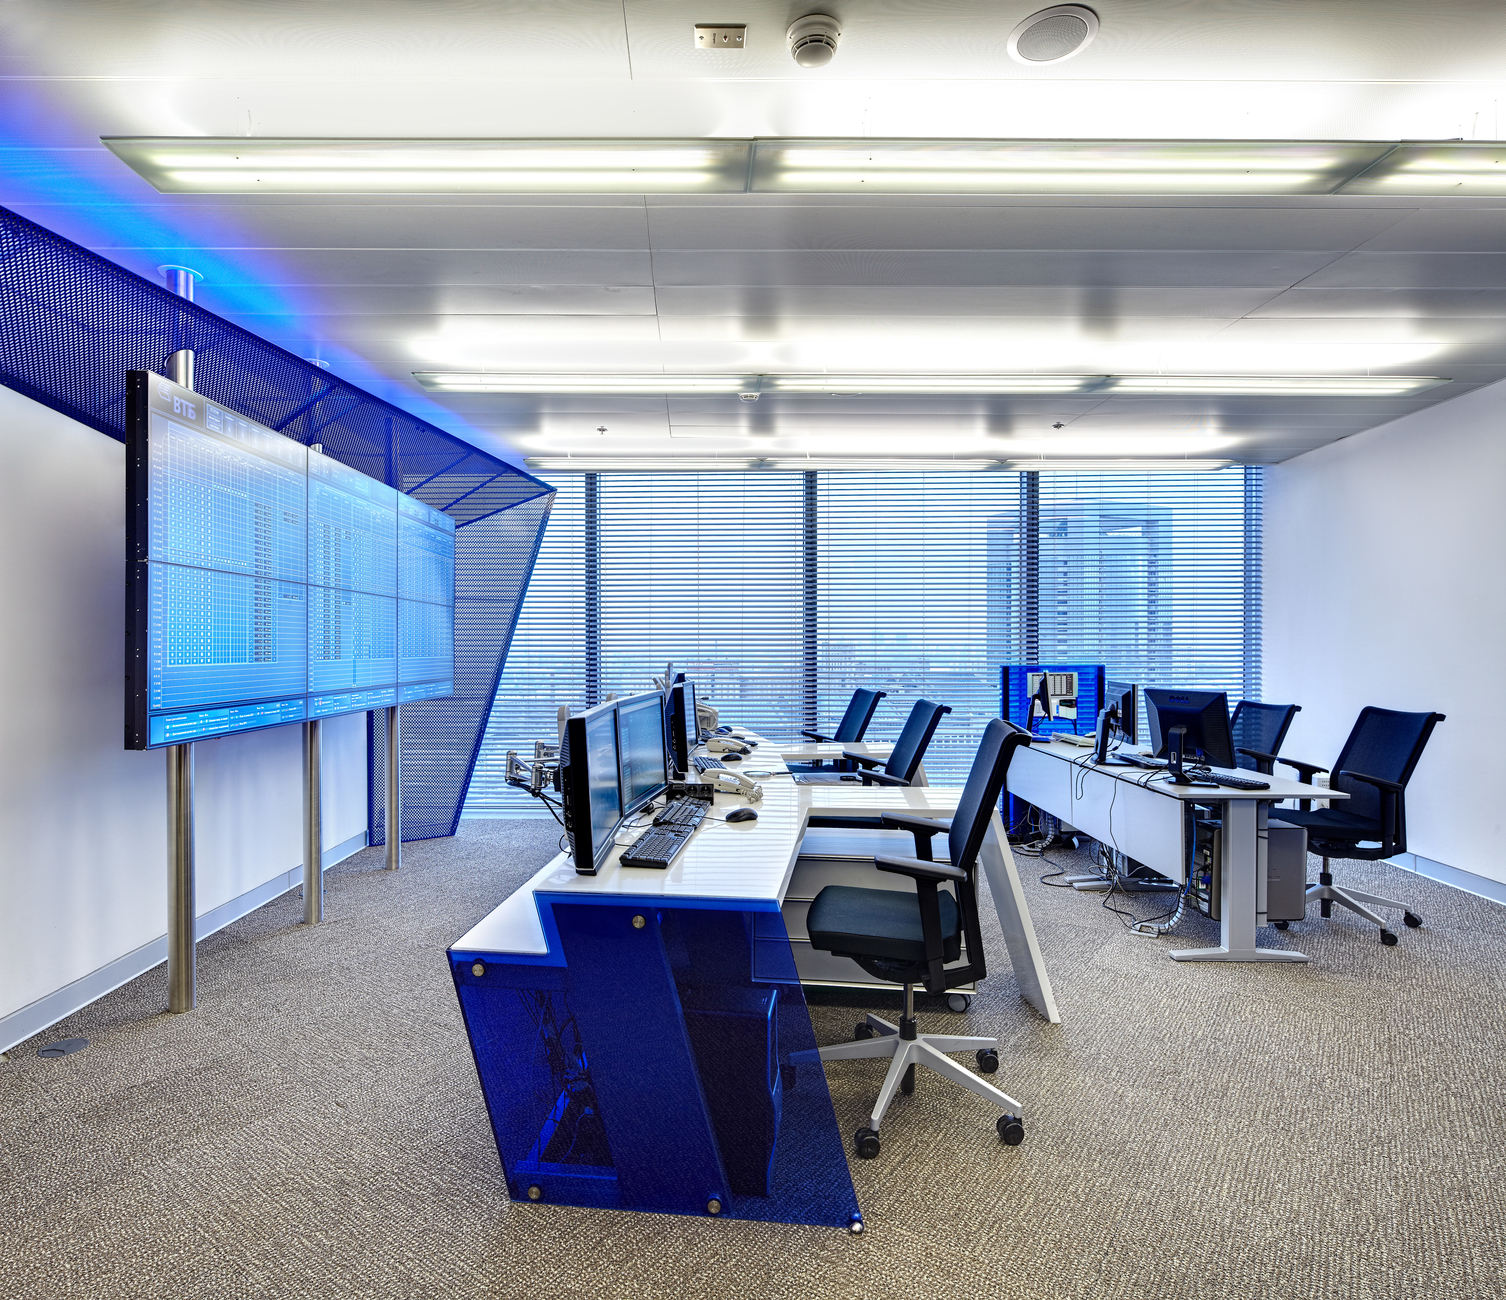 Dispatch Center Of Bank 171 Vtb 187 Moscow Arch Group